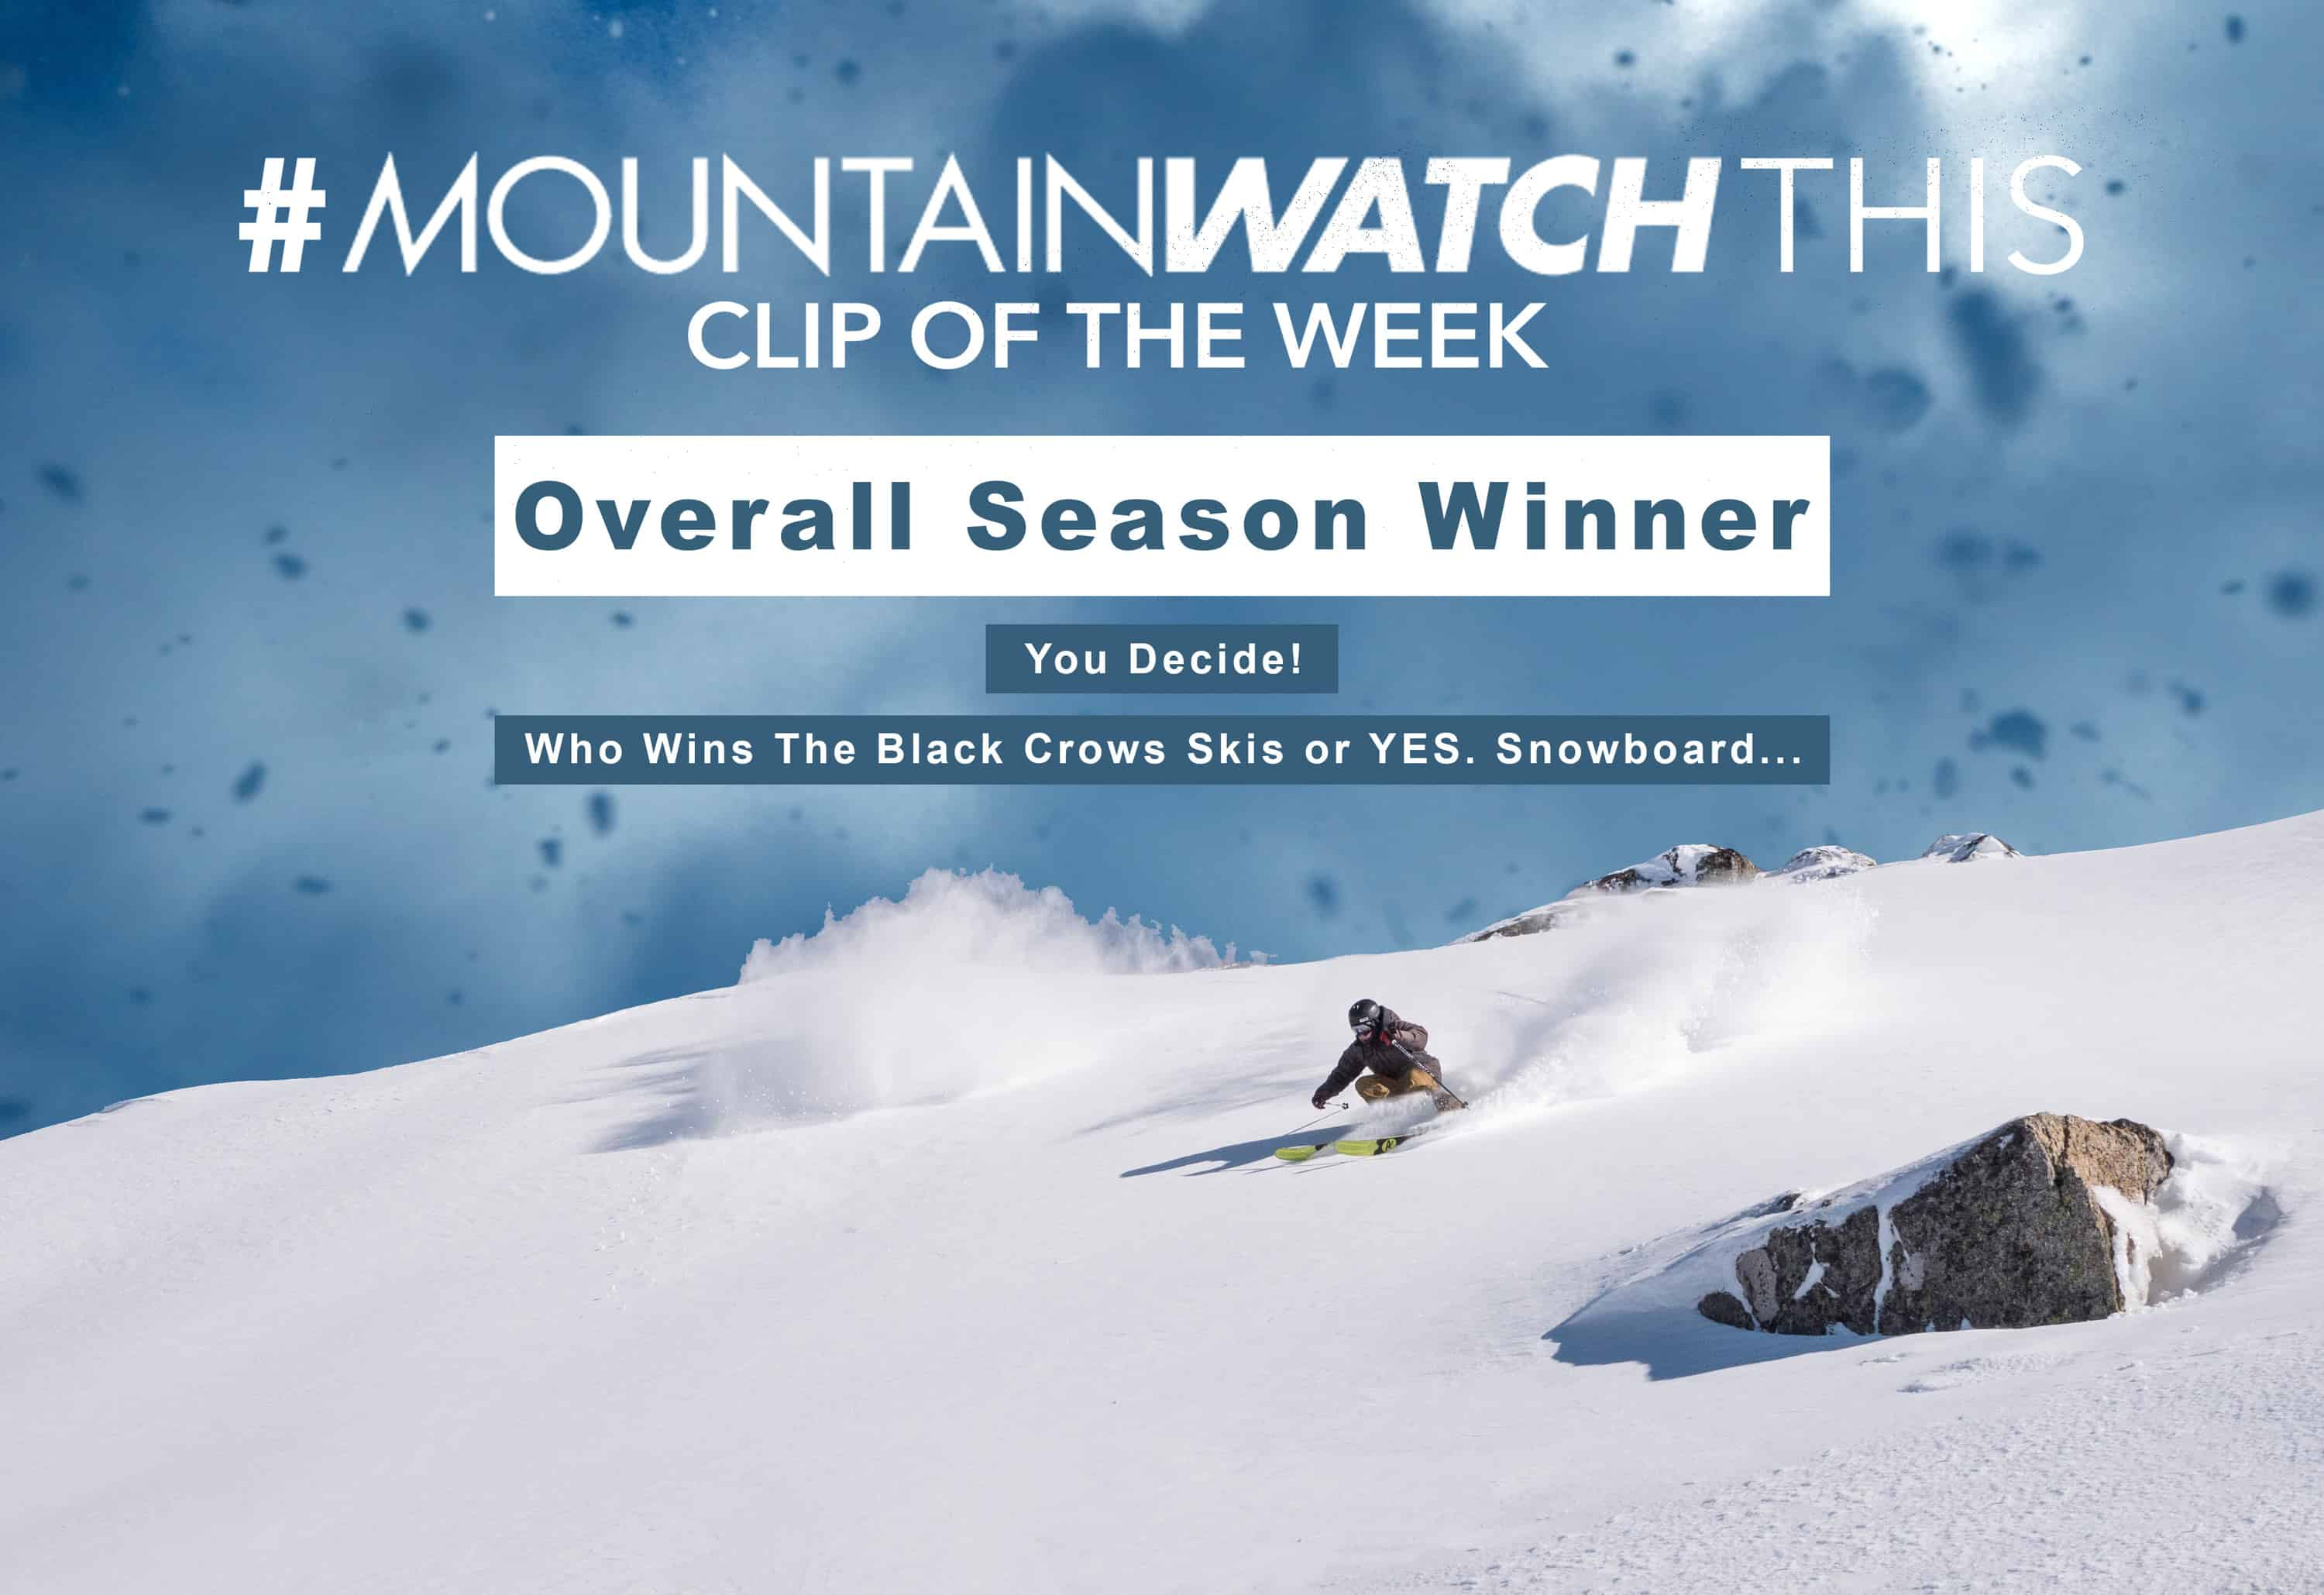 #Mountainwatchthis Clip Of The Week Instagram Comp – Vote For The Season Winner Here!